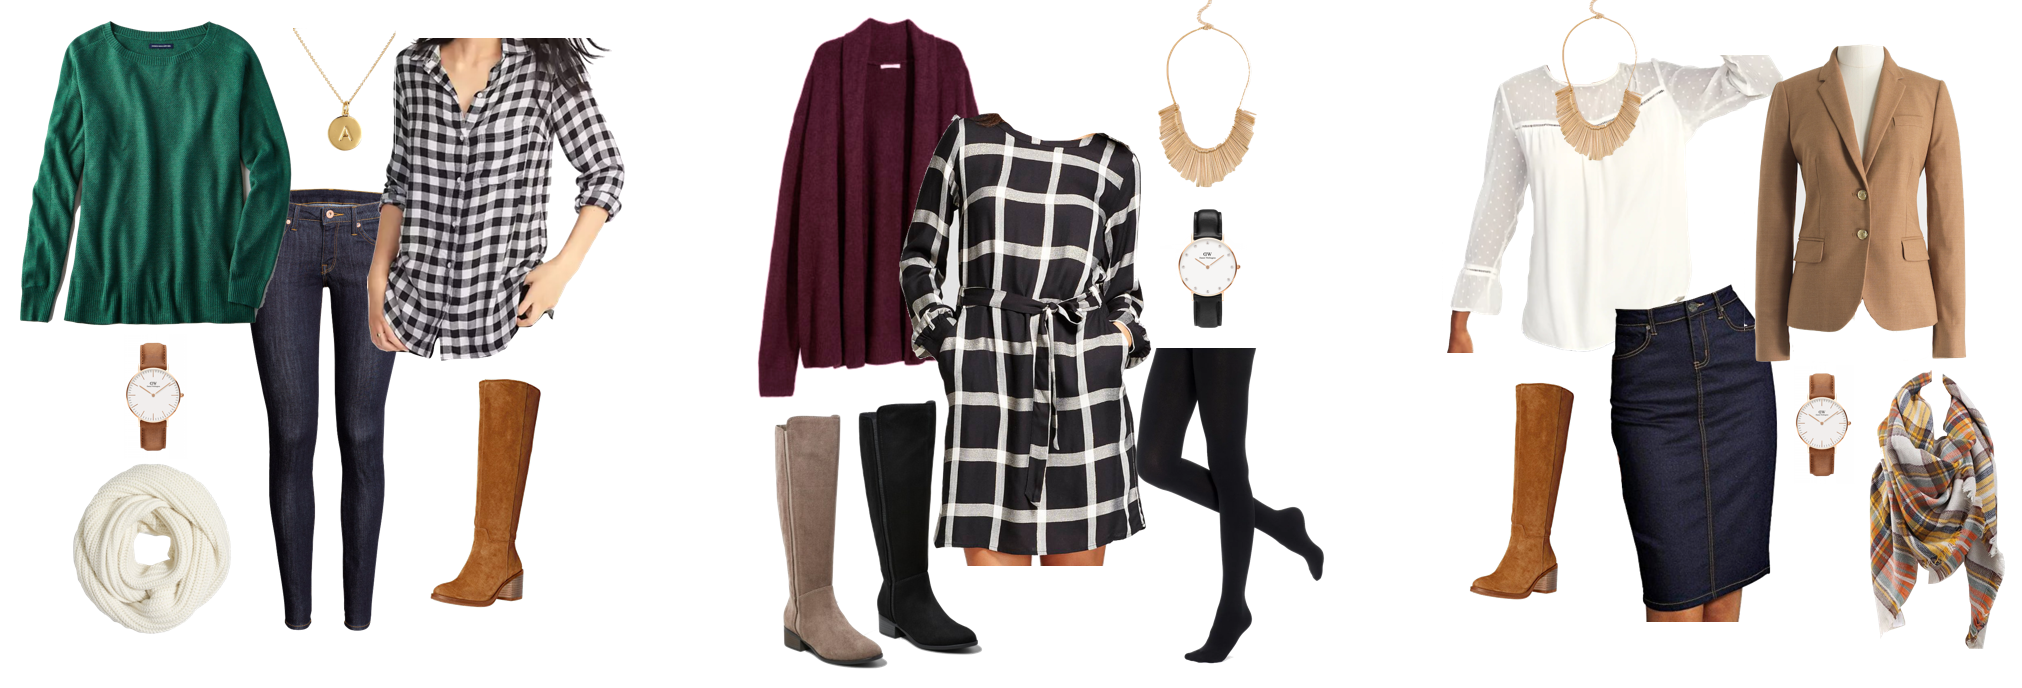 Winter-Outfits-PMT-Style-Challenge.png